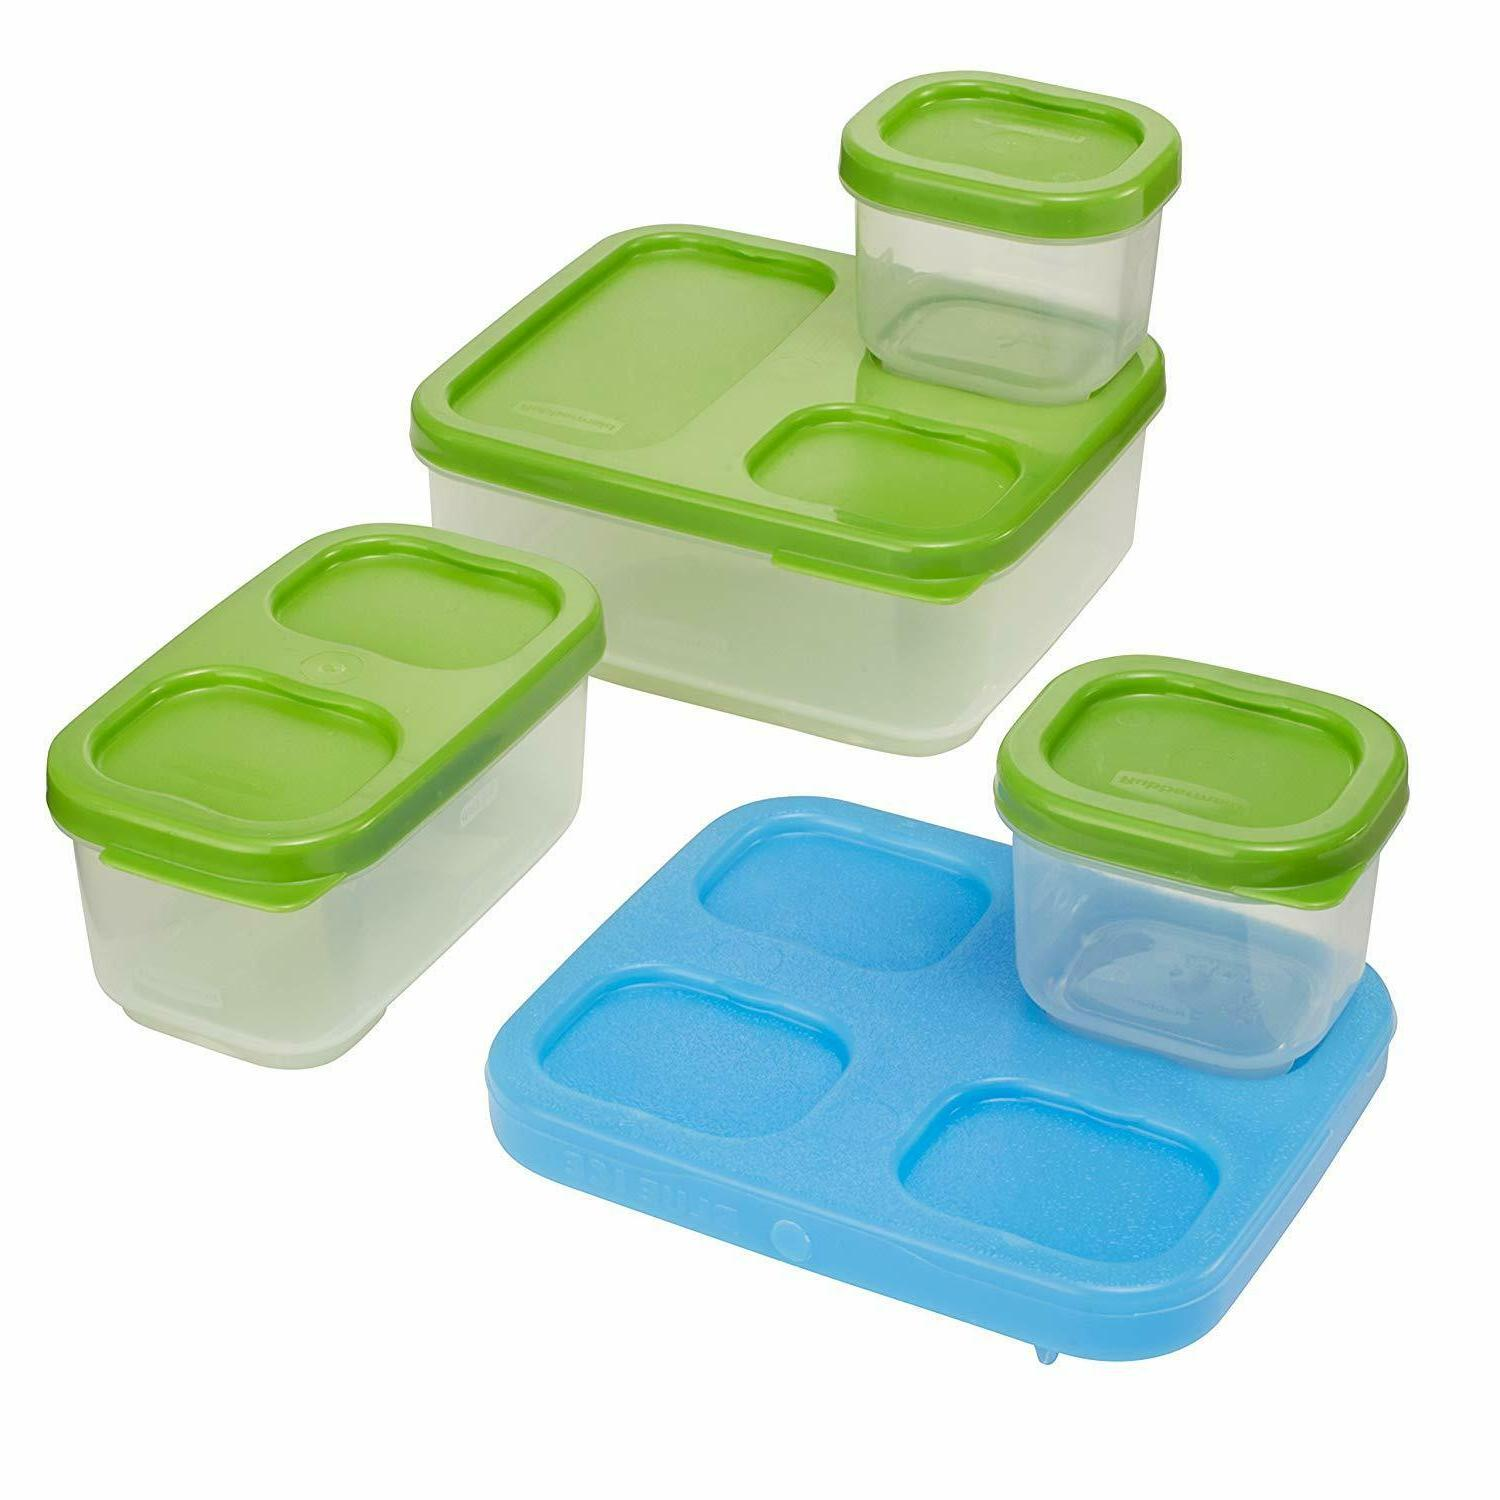 Rubbermaid Durable Containers BPA